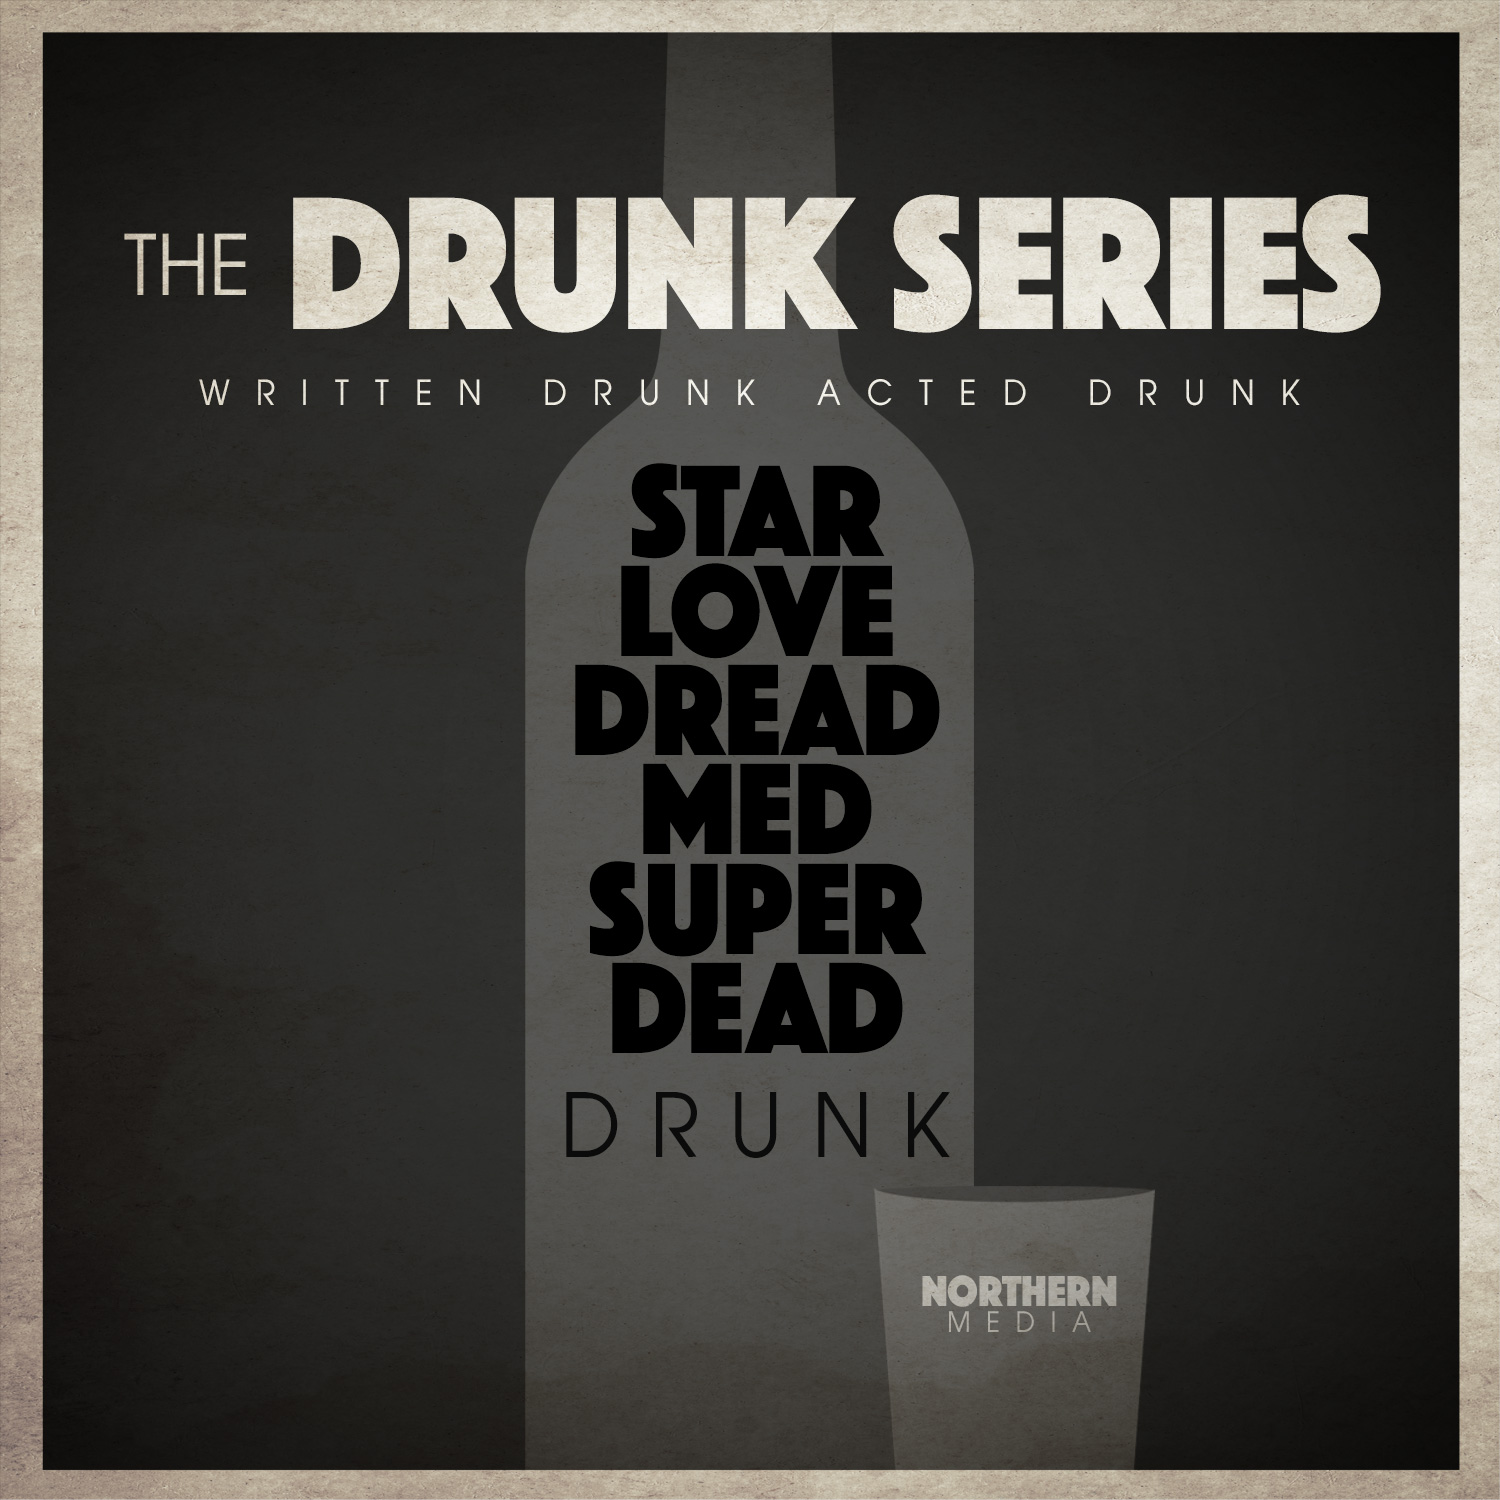 The Drunk Series Begins Its Launch!